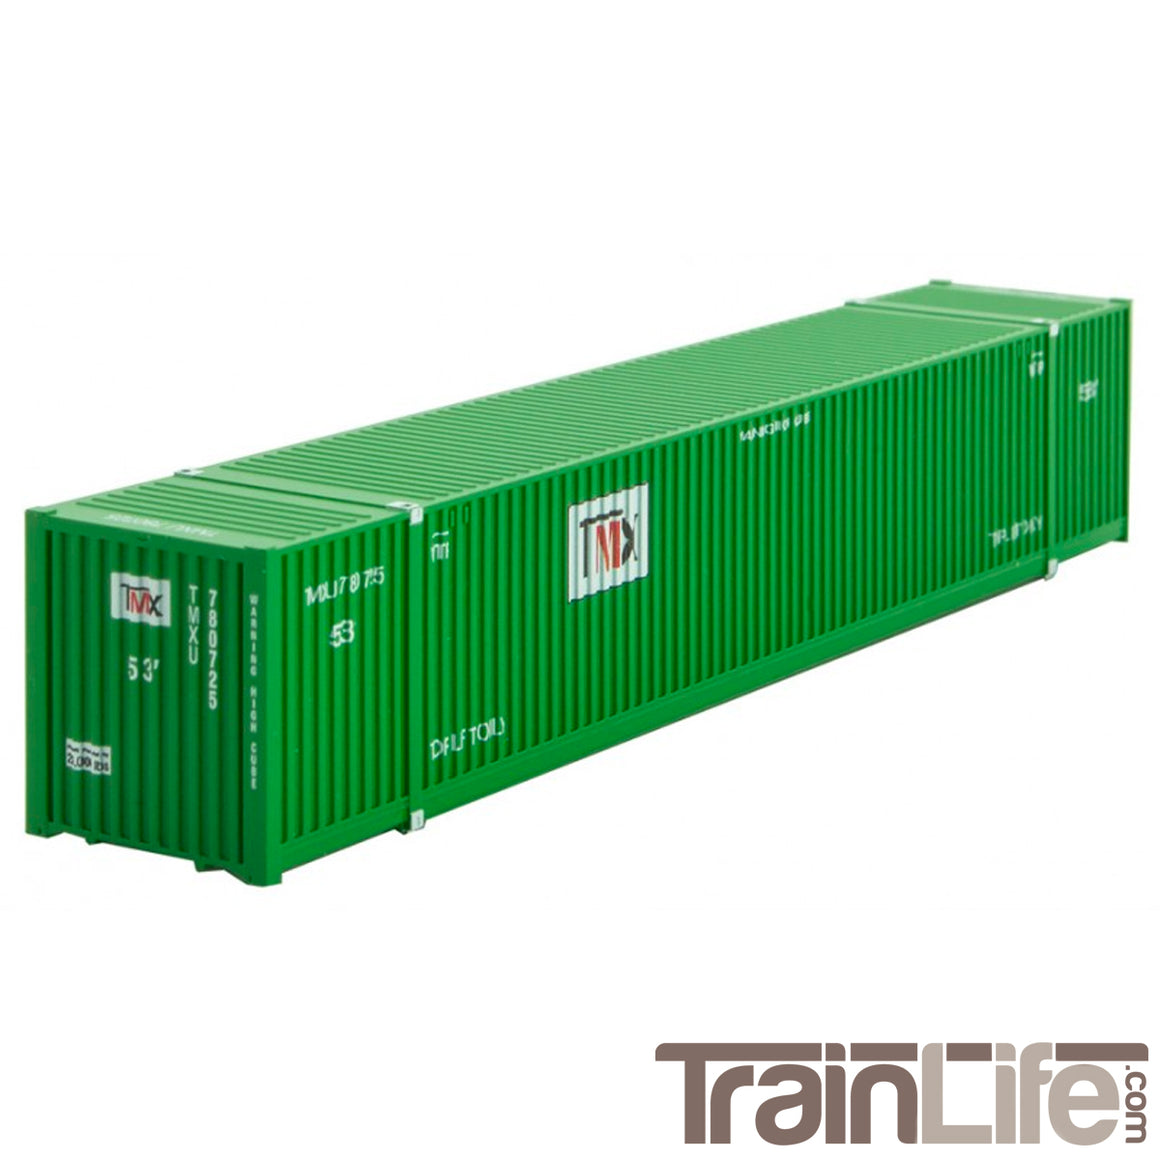 N Scale: 53' Shipping Container - TMX